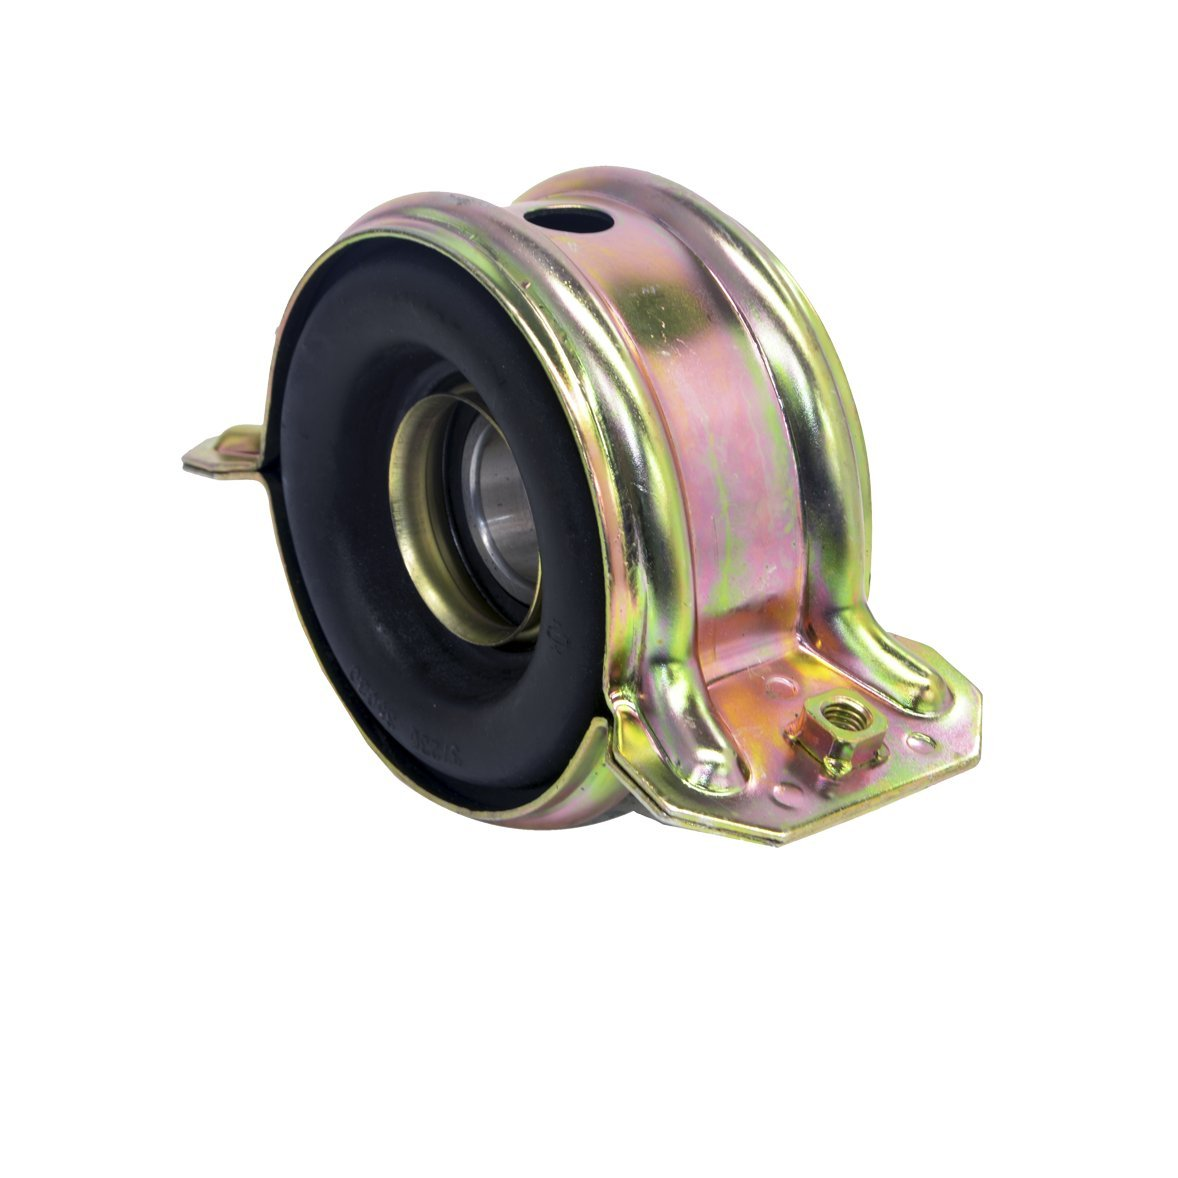 Eagle BHP 1532 Drive Shaft Center Support Bearing 2.2 L For Toyota Pick Up